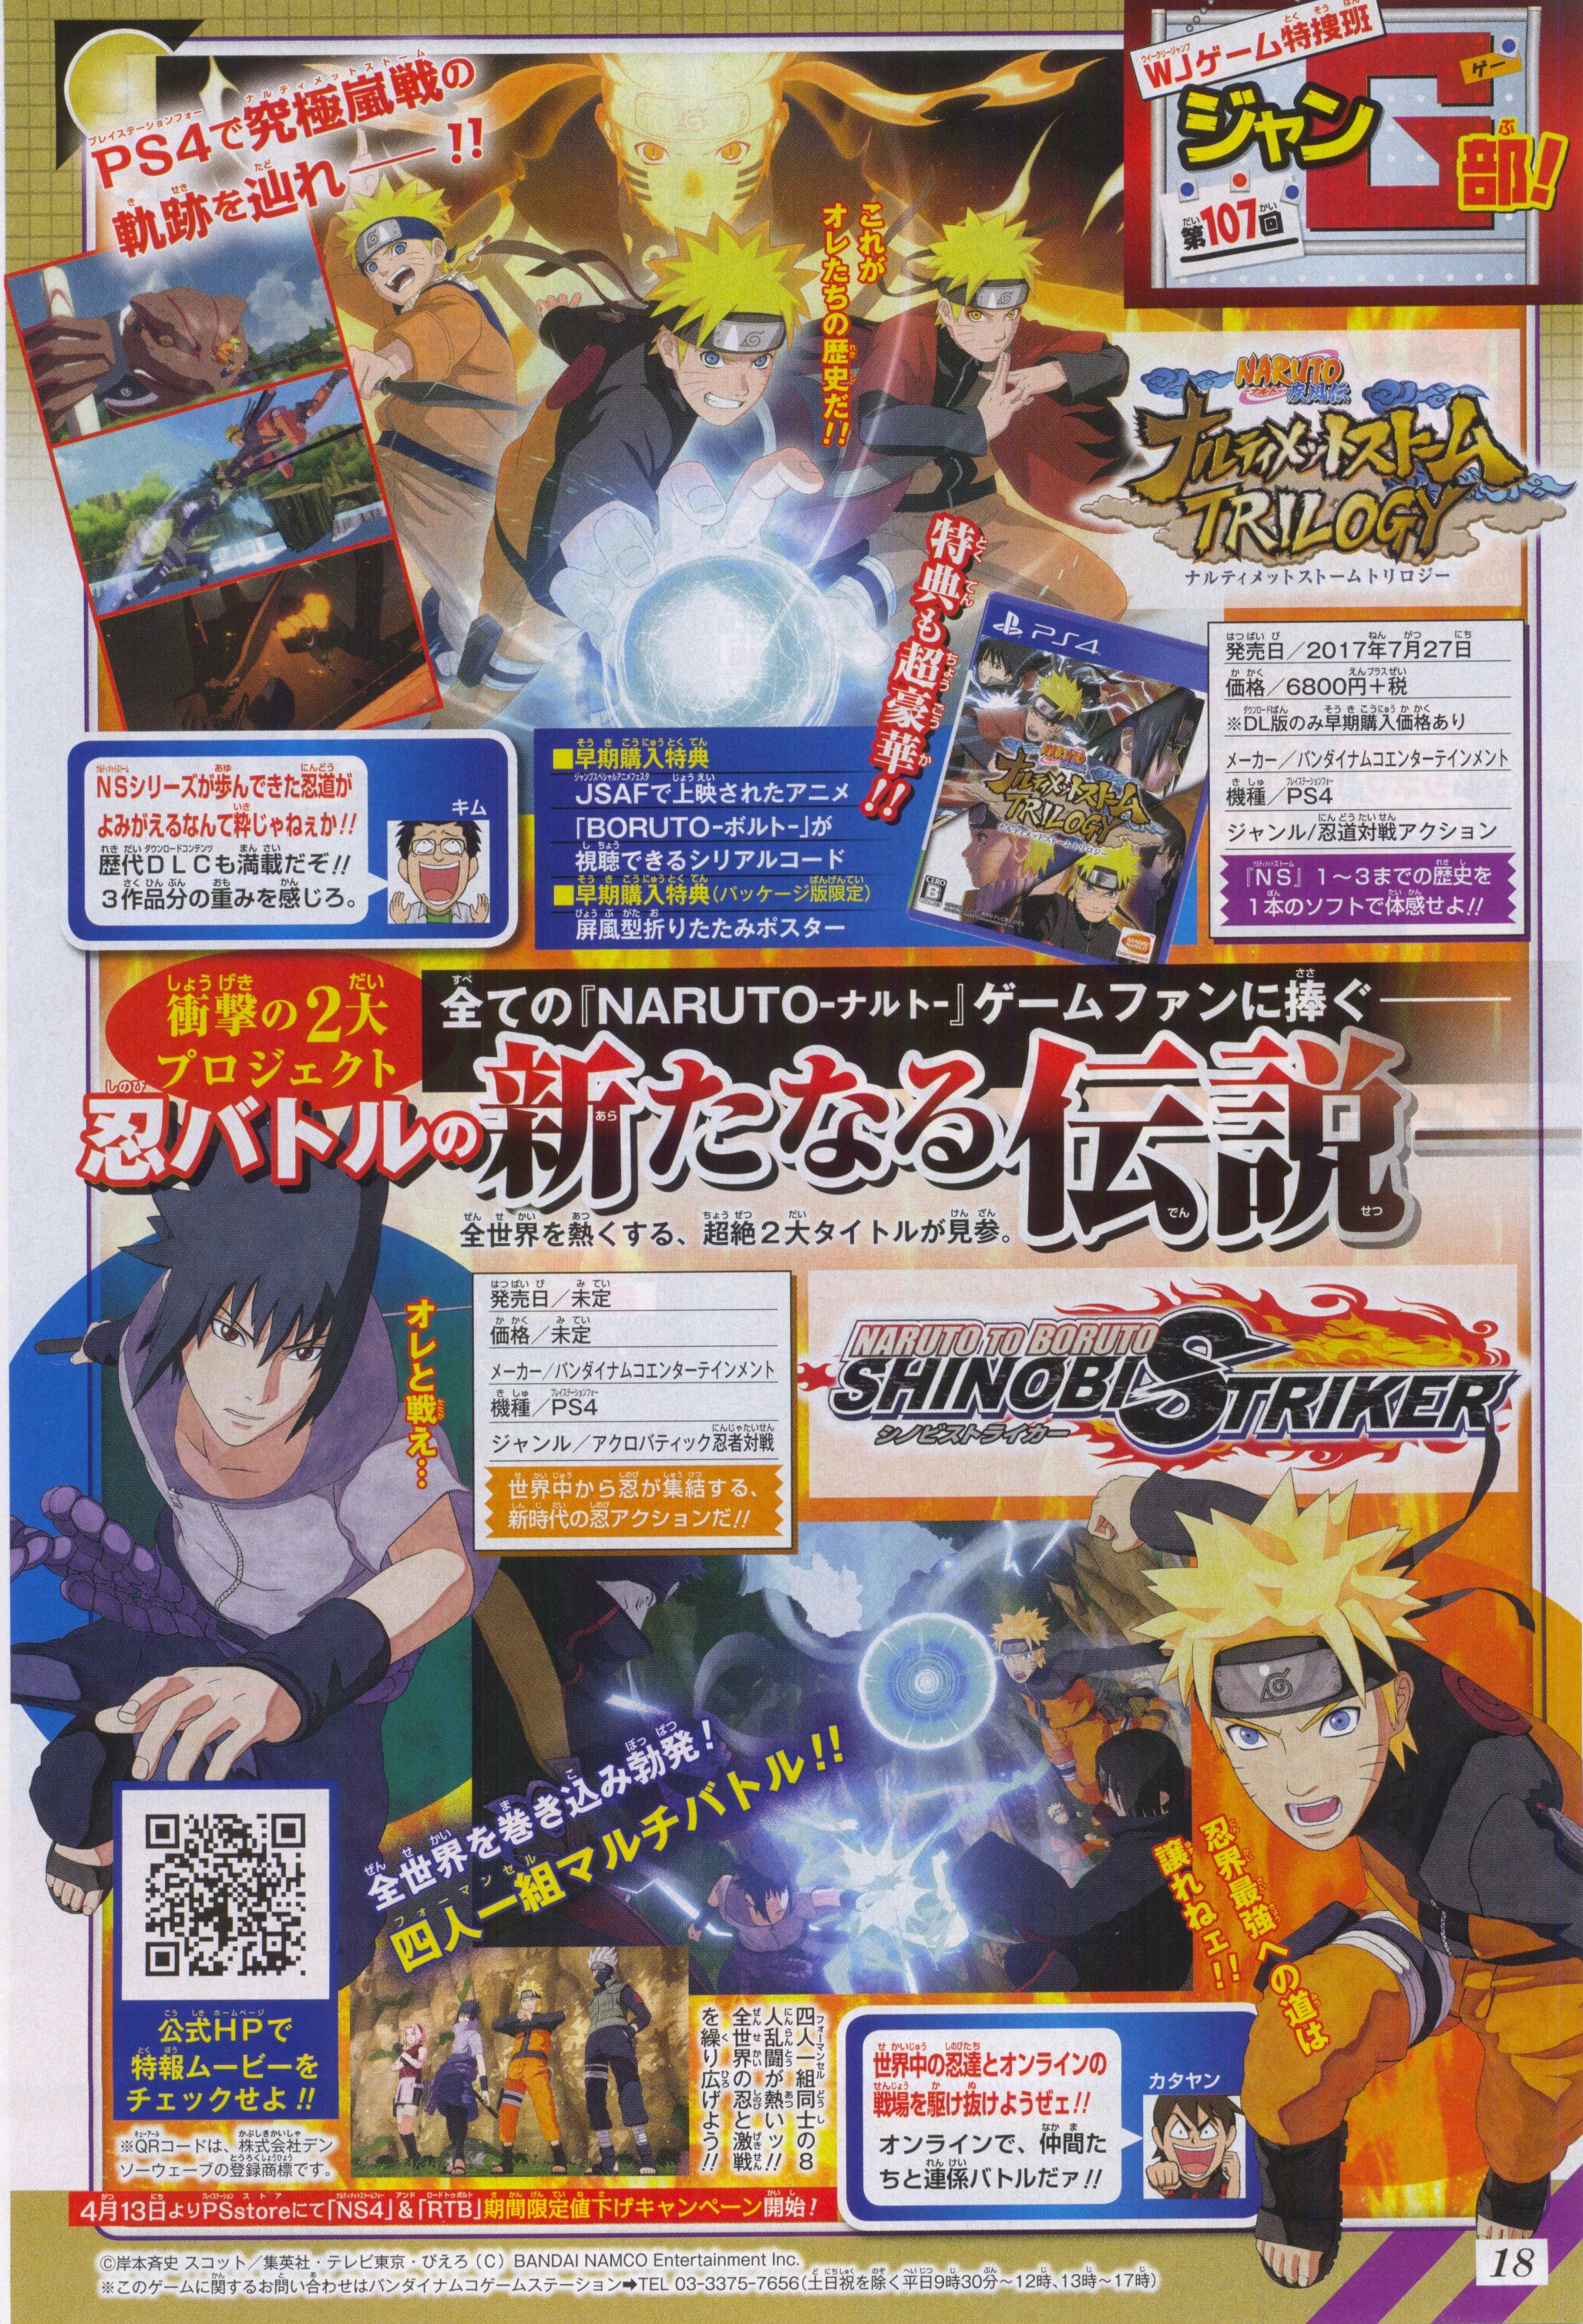 Naruto to Boruto Shinobi Striker announced for PS4